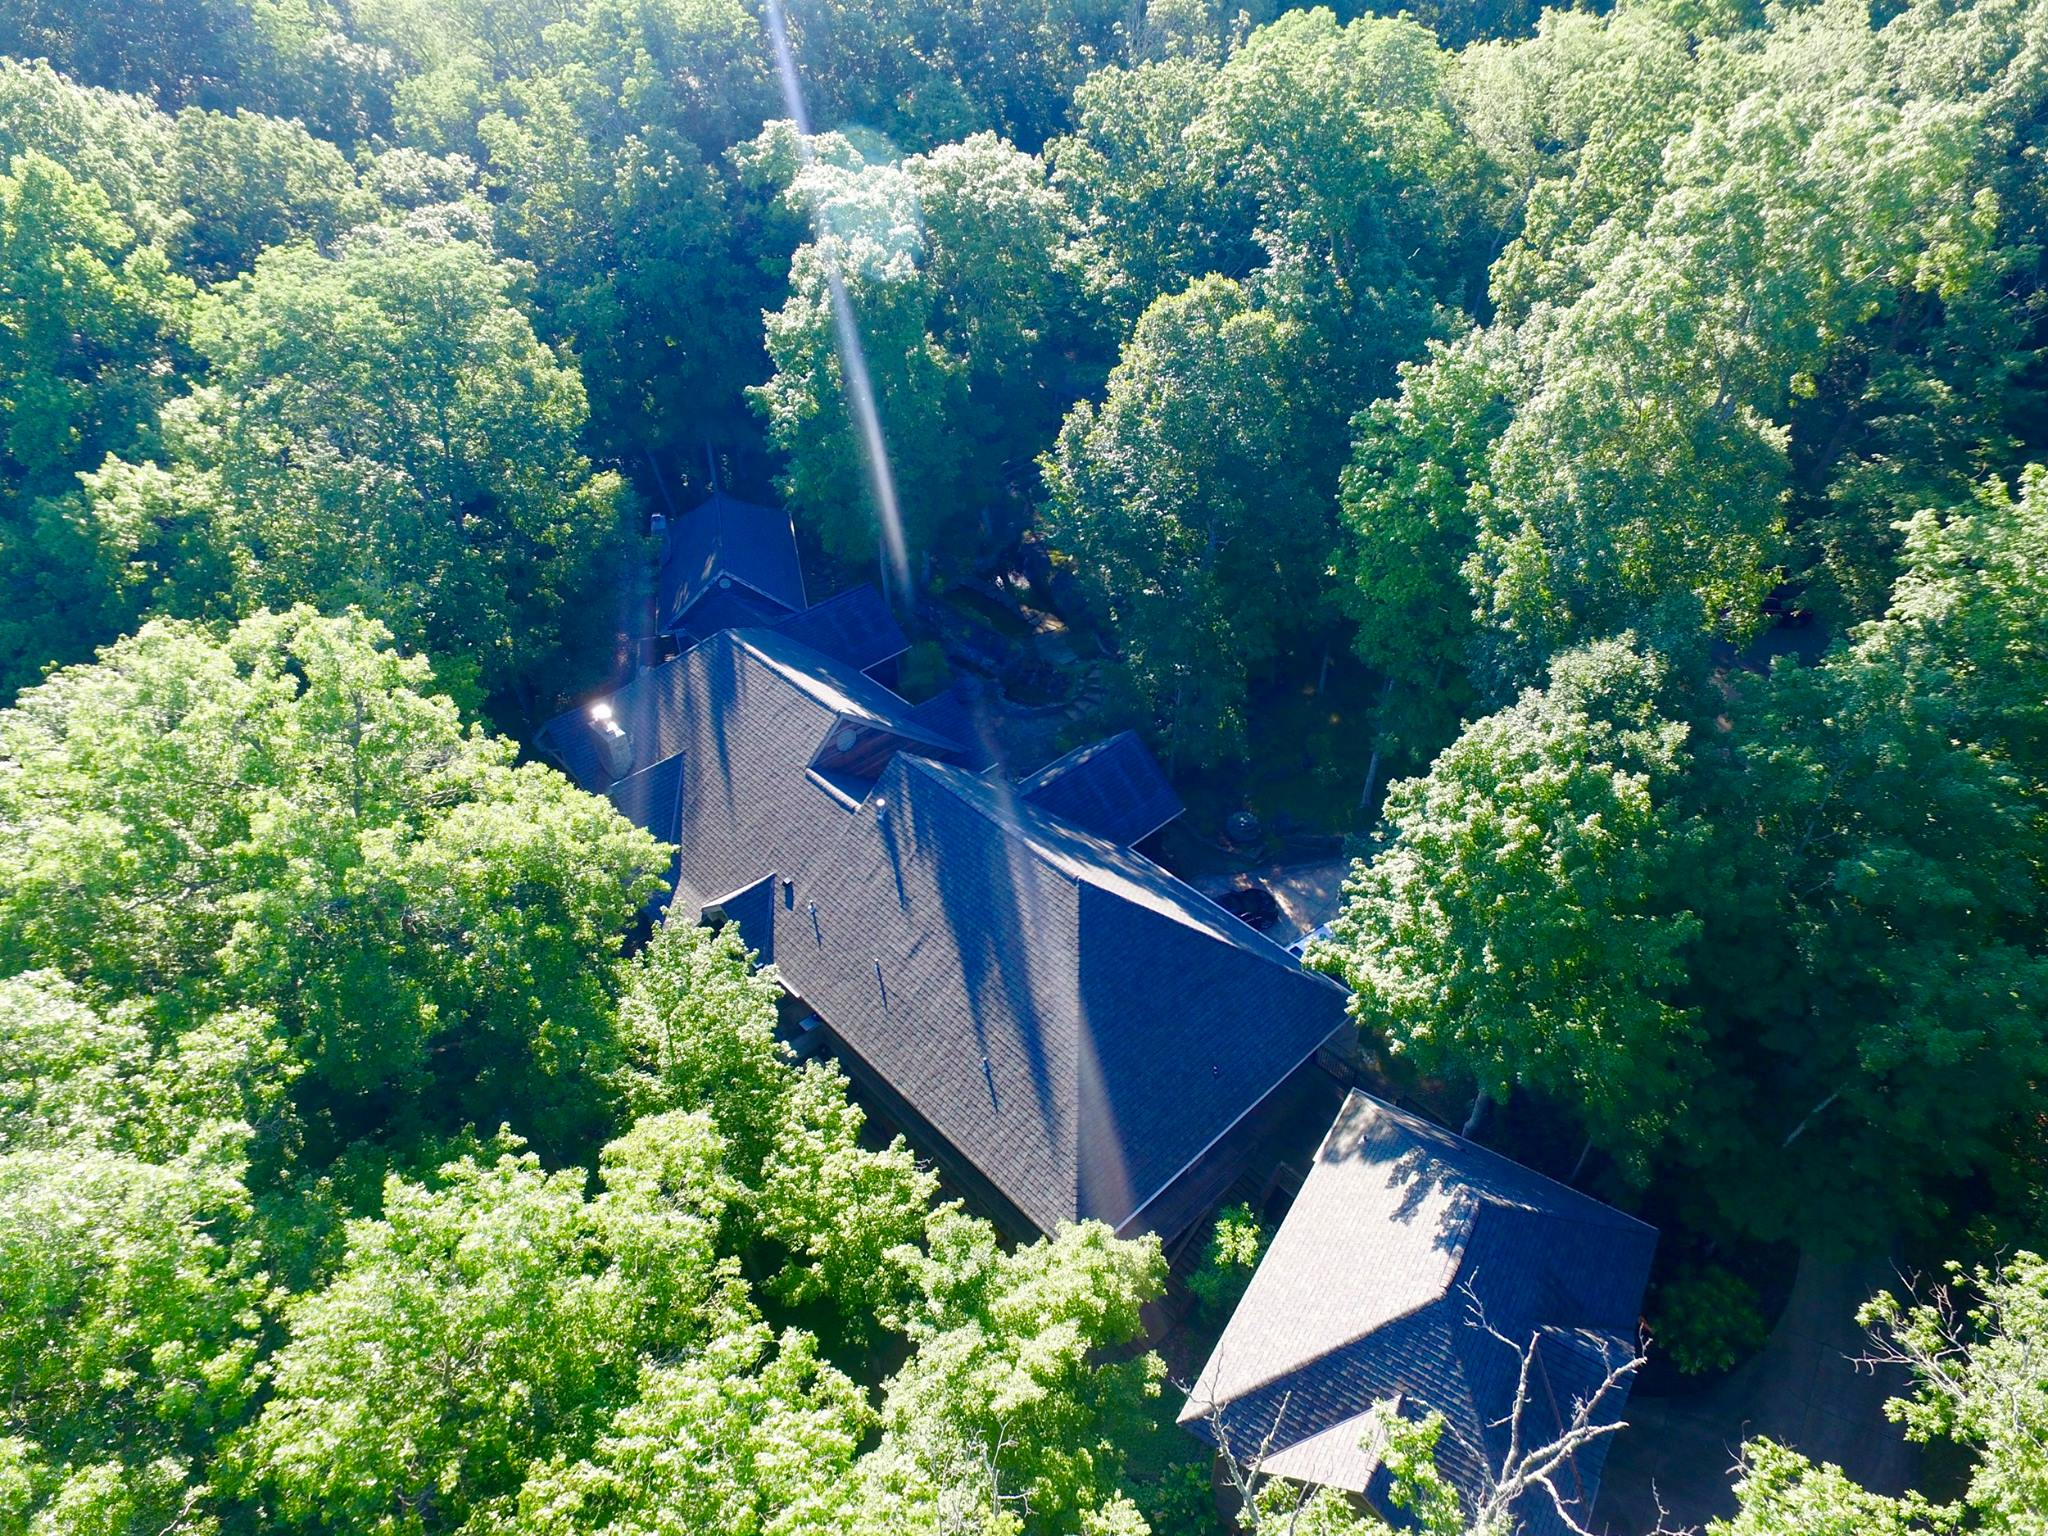 Aerial view of newly shingled grey roof on a large residential property surrounded by beautiful green trees.